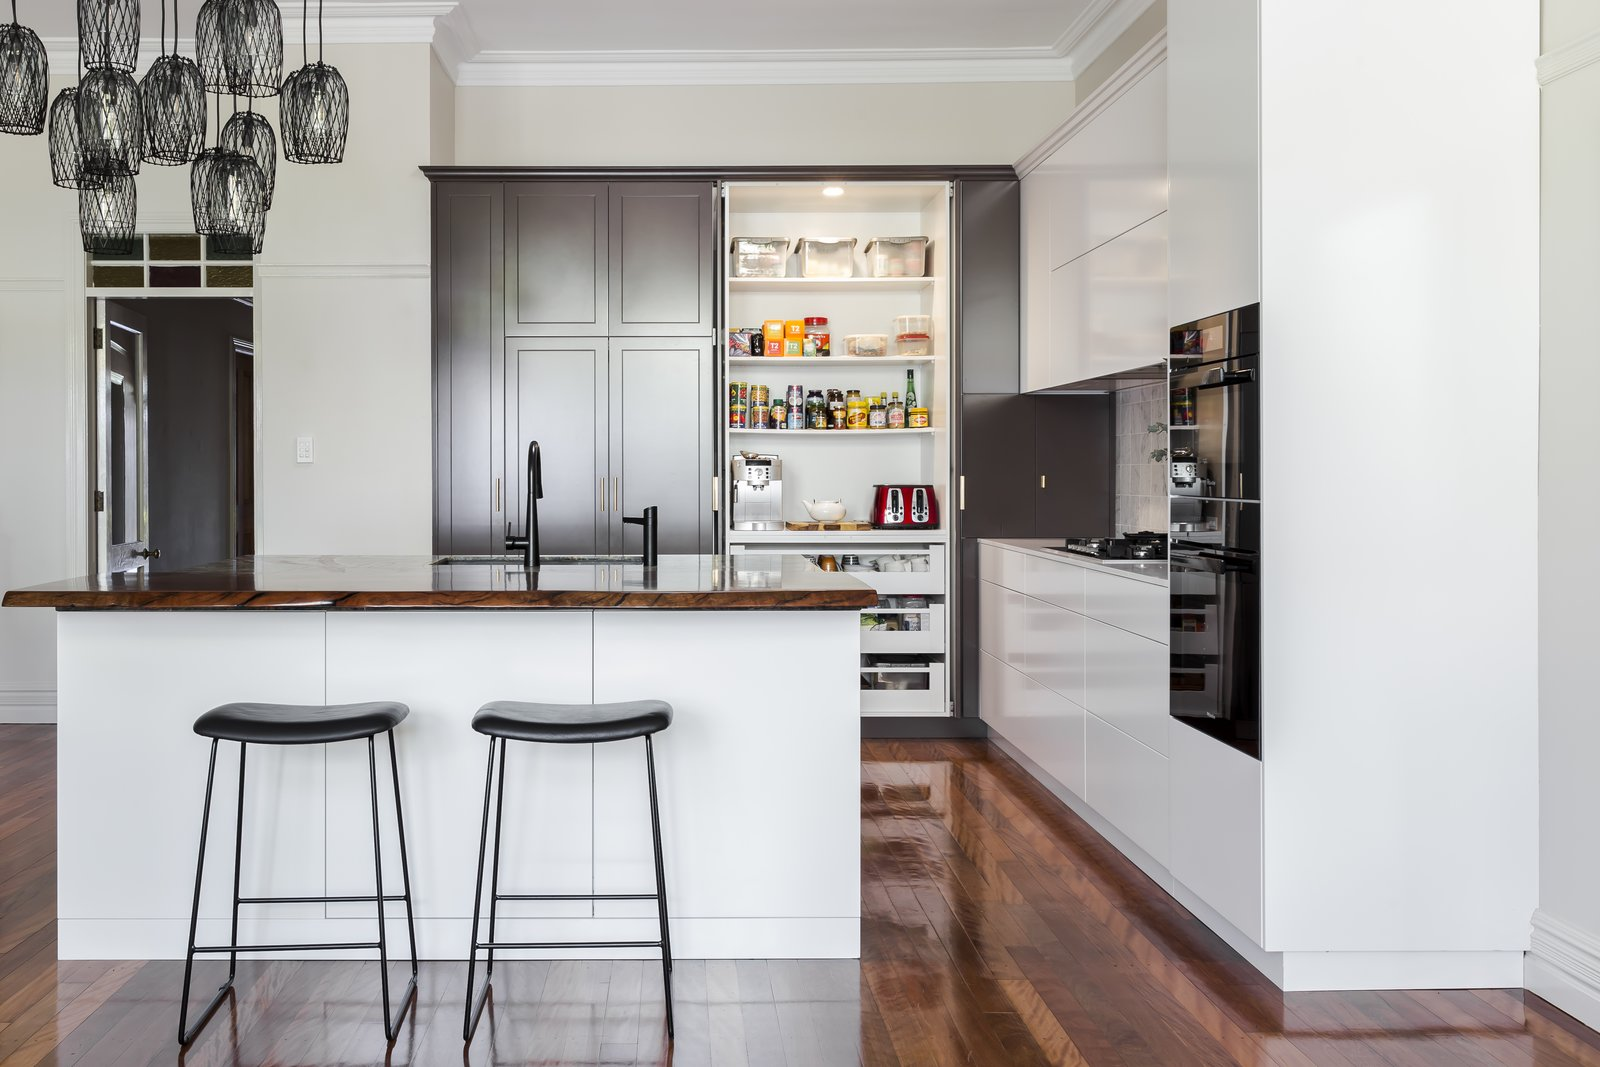 Kitchens Drummoyne 10 Design Tips For Kitchens According To Expert Renovators Dwell